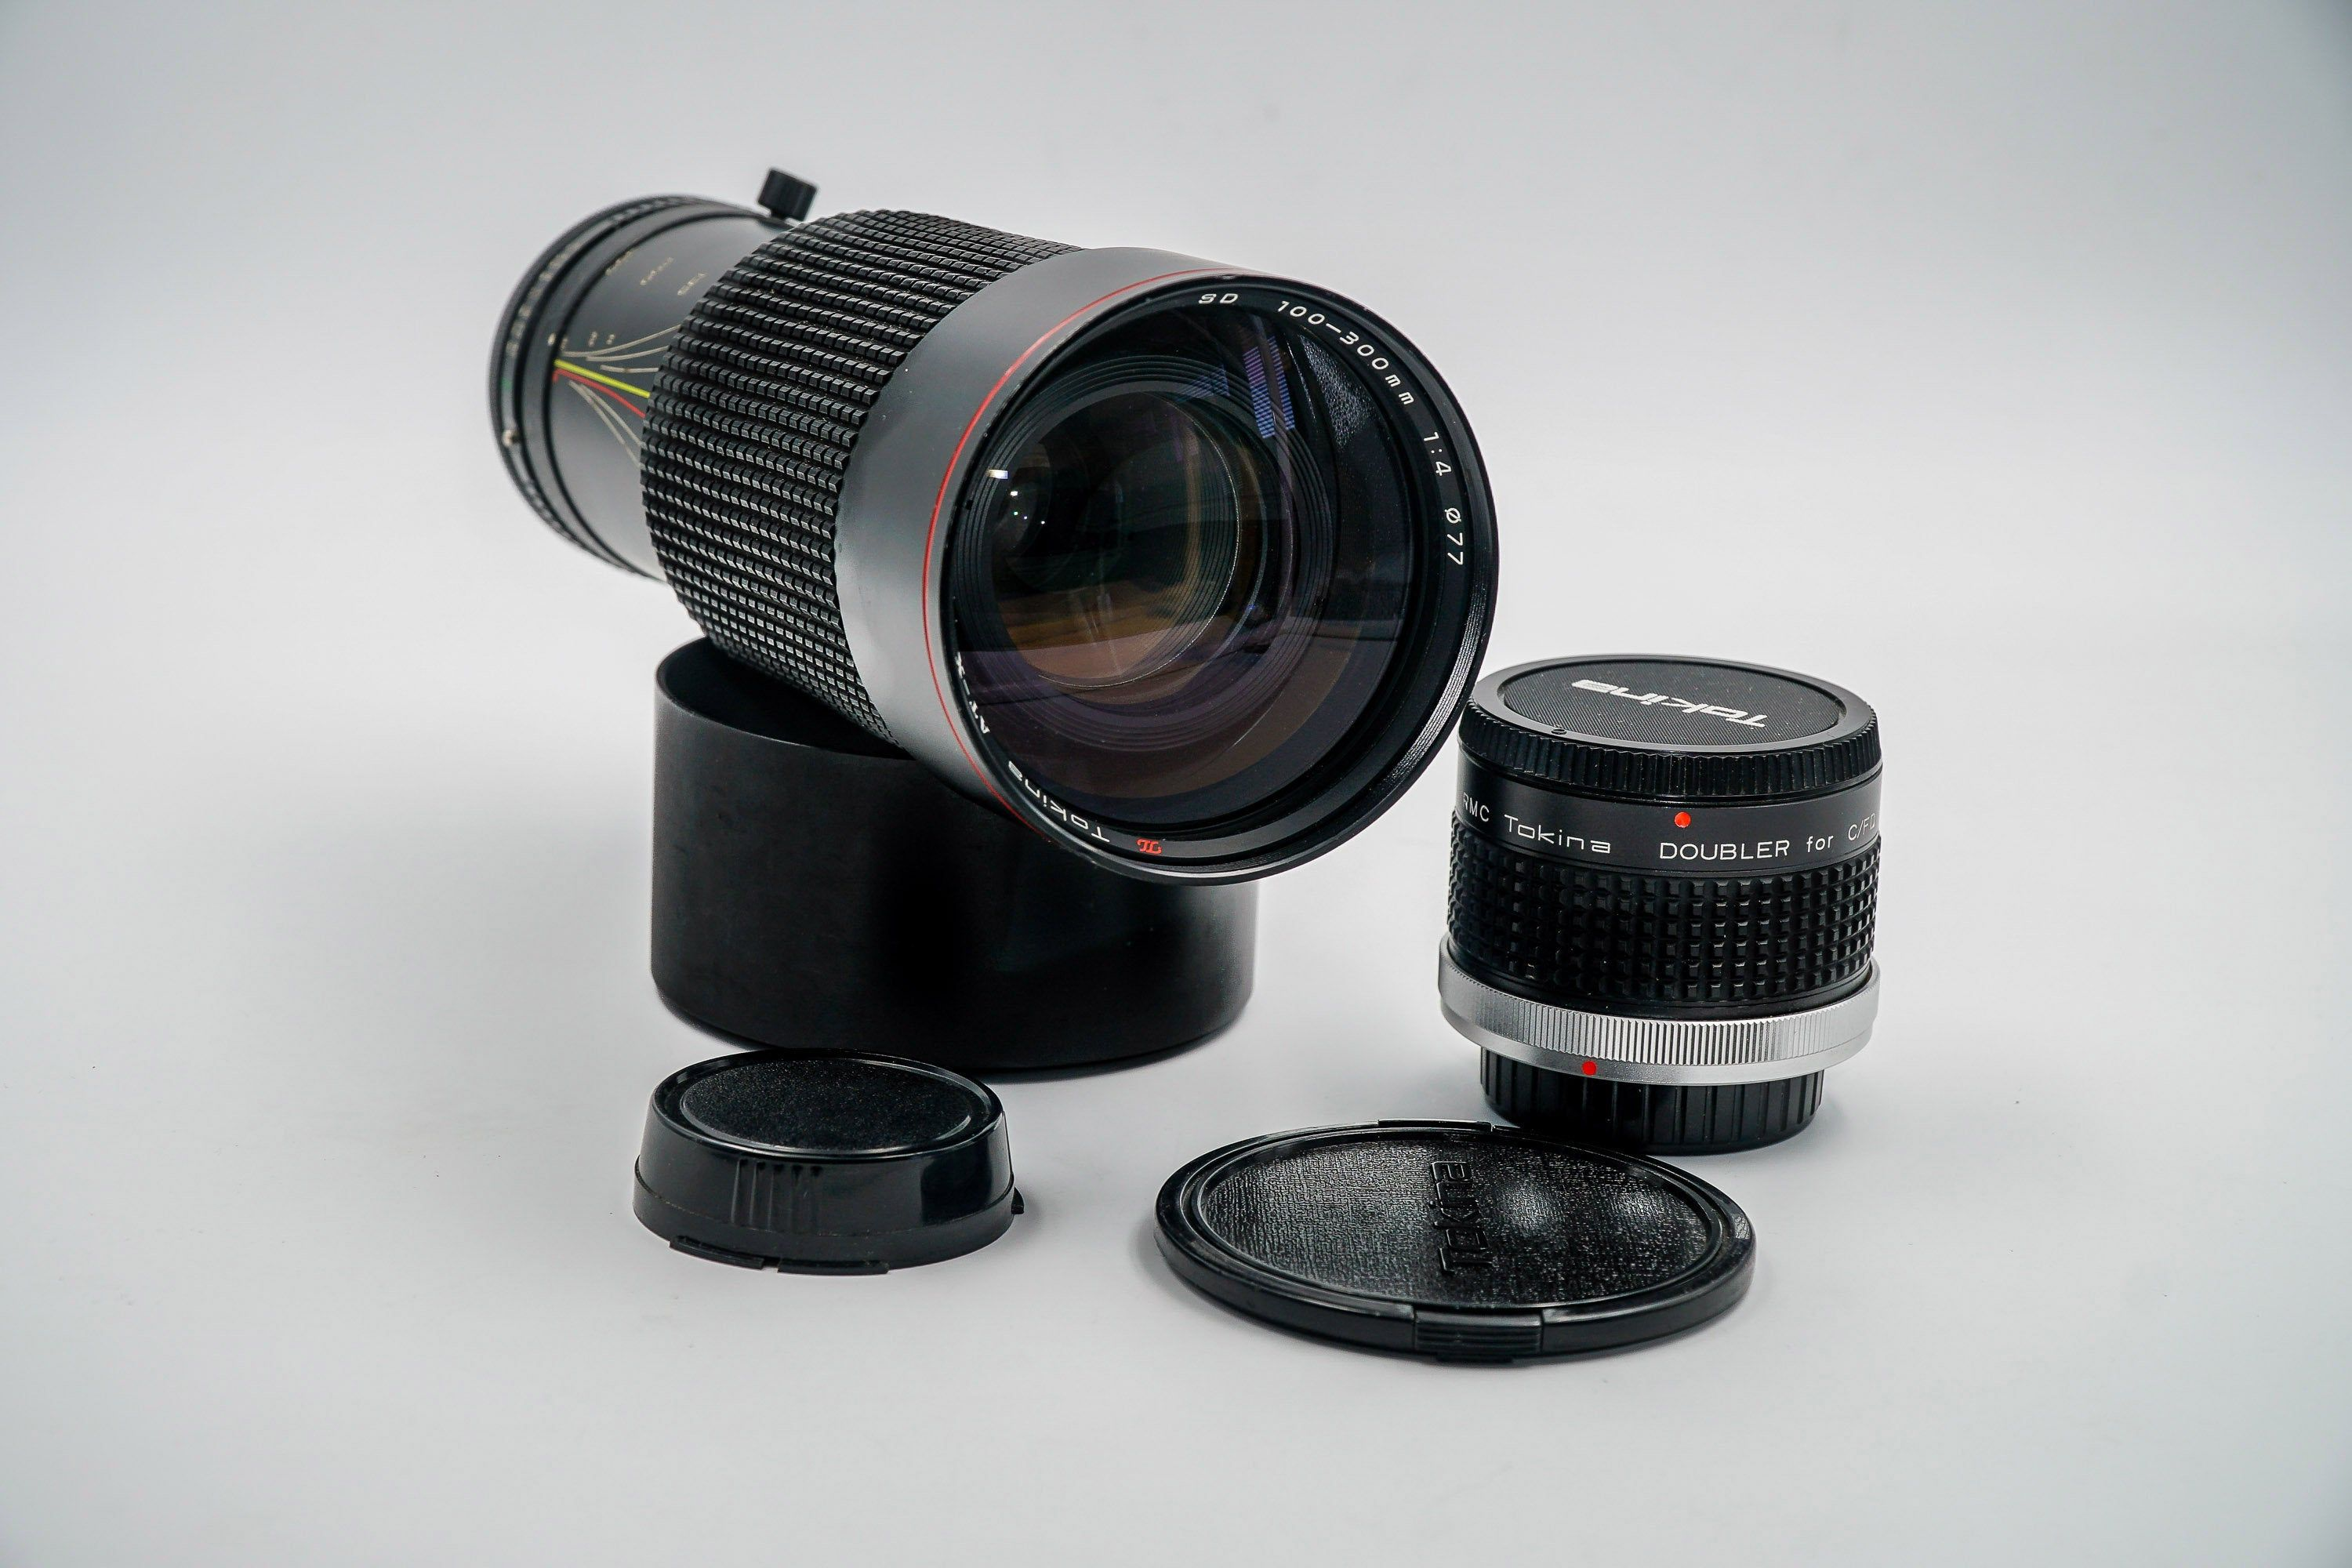 Tokina 100 300mm At X With Constant F4 Aperture Lens Canon Fd Etsy Leather Case Aperture Telephoto Zoom Lens